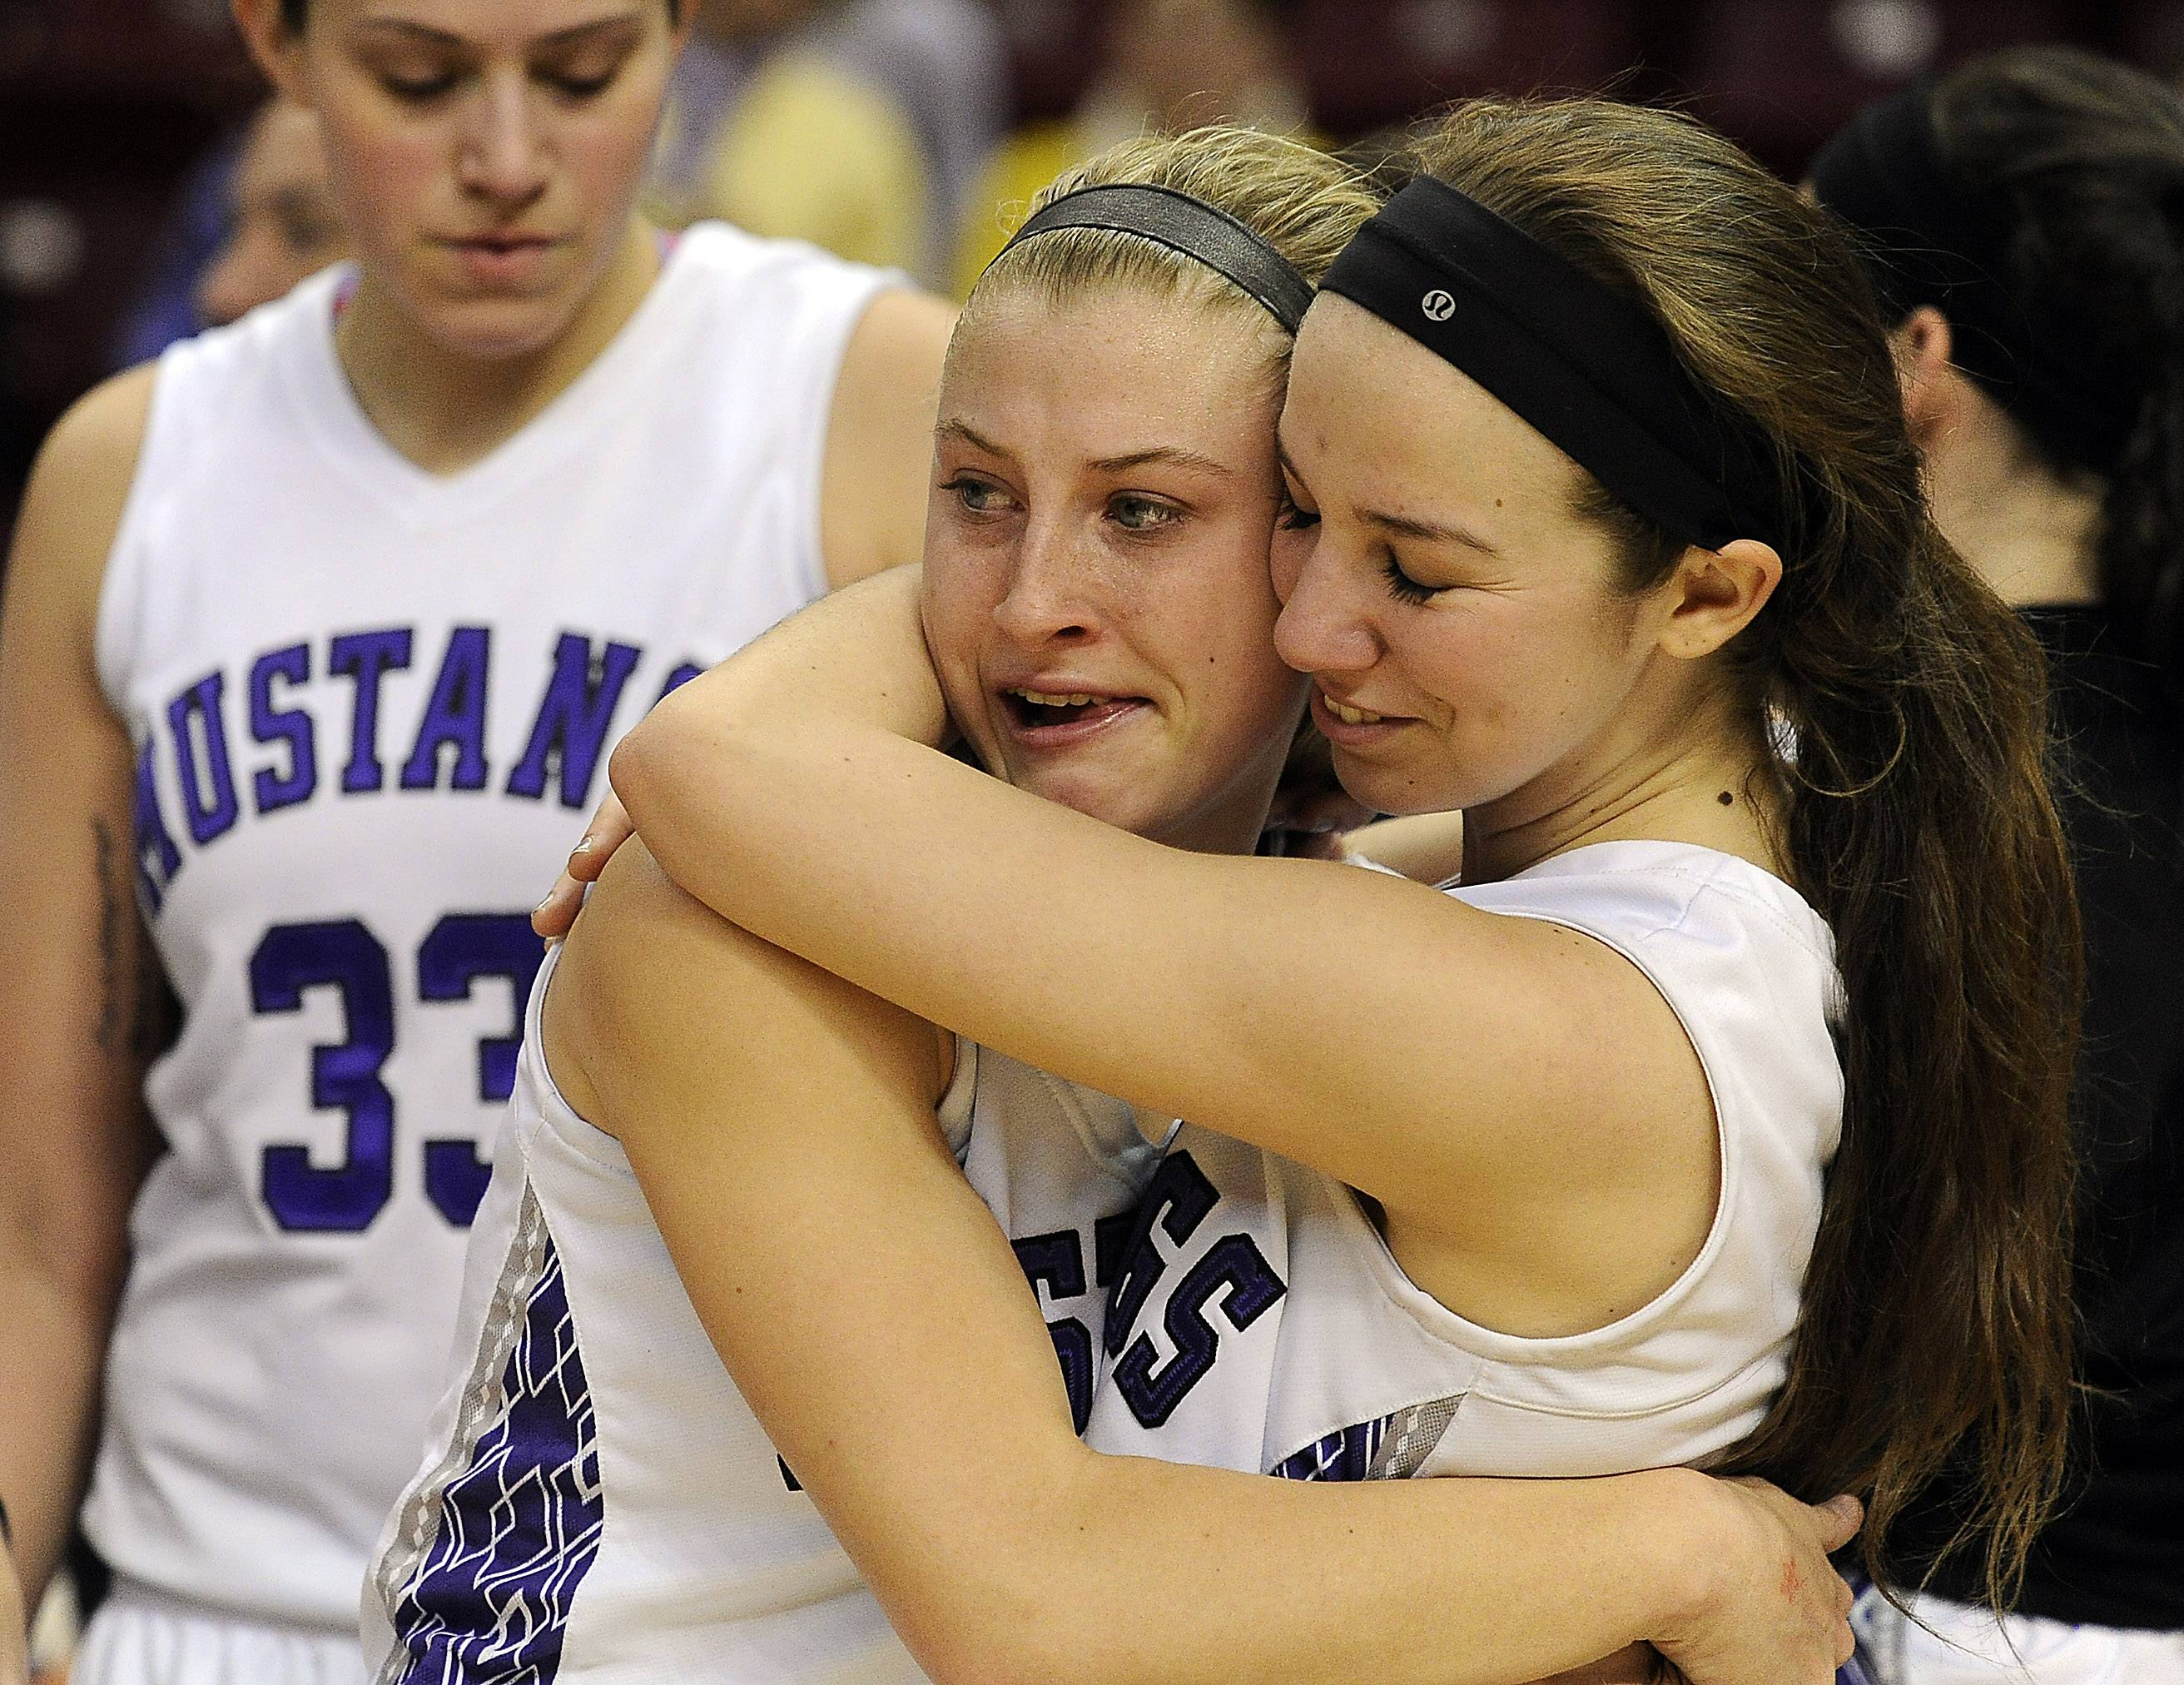 Rolling Meadows Jackie Kemph and Sami Kay embrace as their season comes to an end losing to Chicago (Whitney Young) in the Class 4A girls basketball championship finals game in Normal on Saturday.